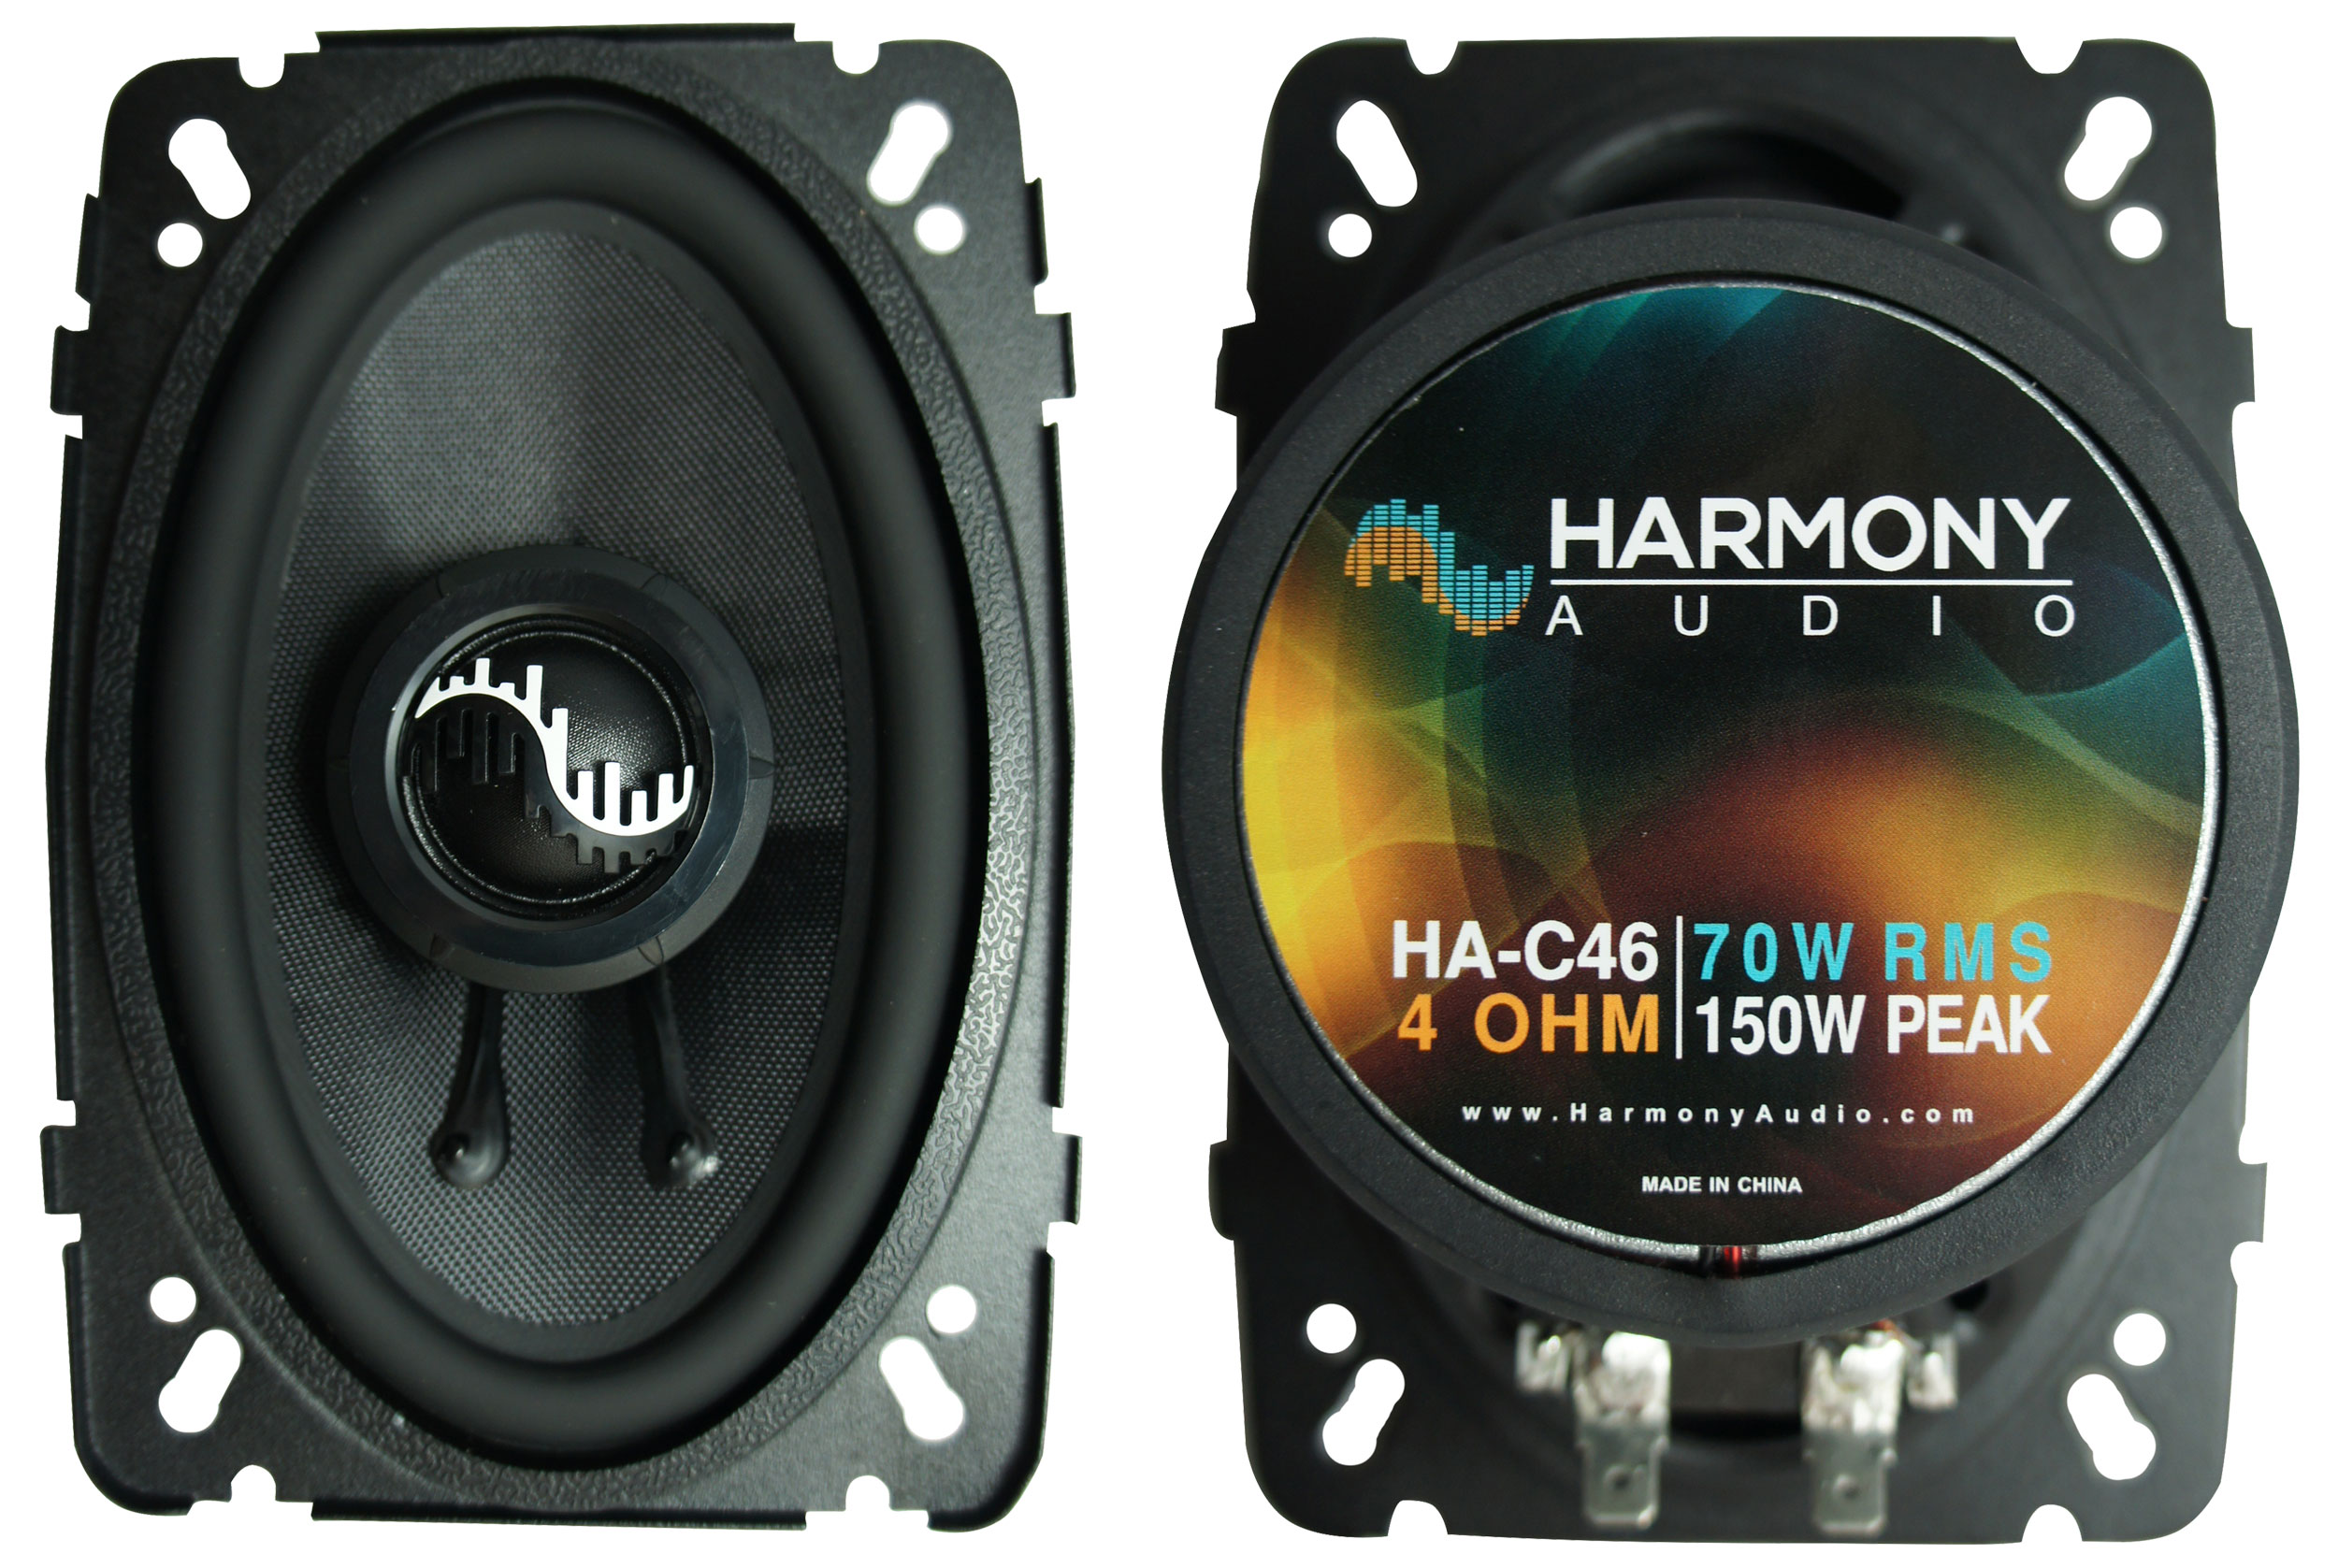 Fits Yugo GVX 1986-1990 Rear Deck Replacement Speaker Harmony HA-R46 Speakers